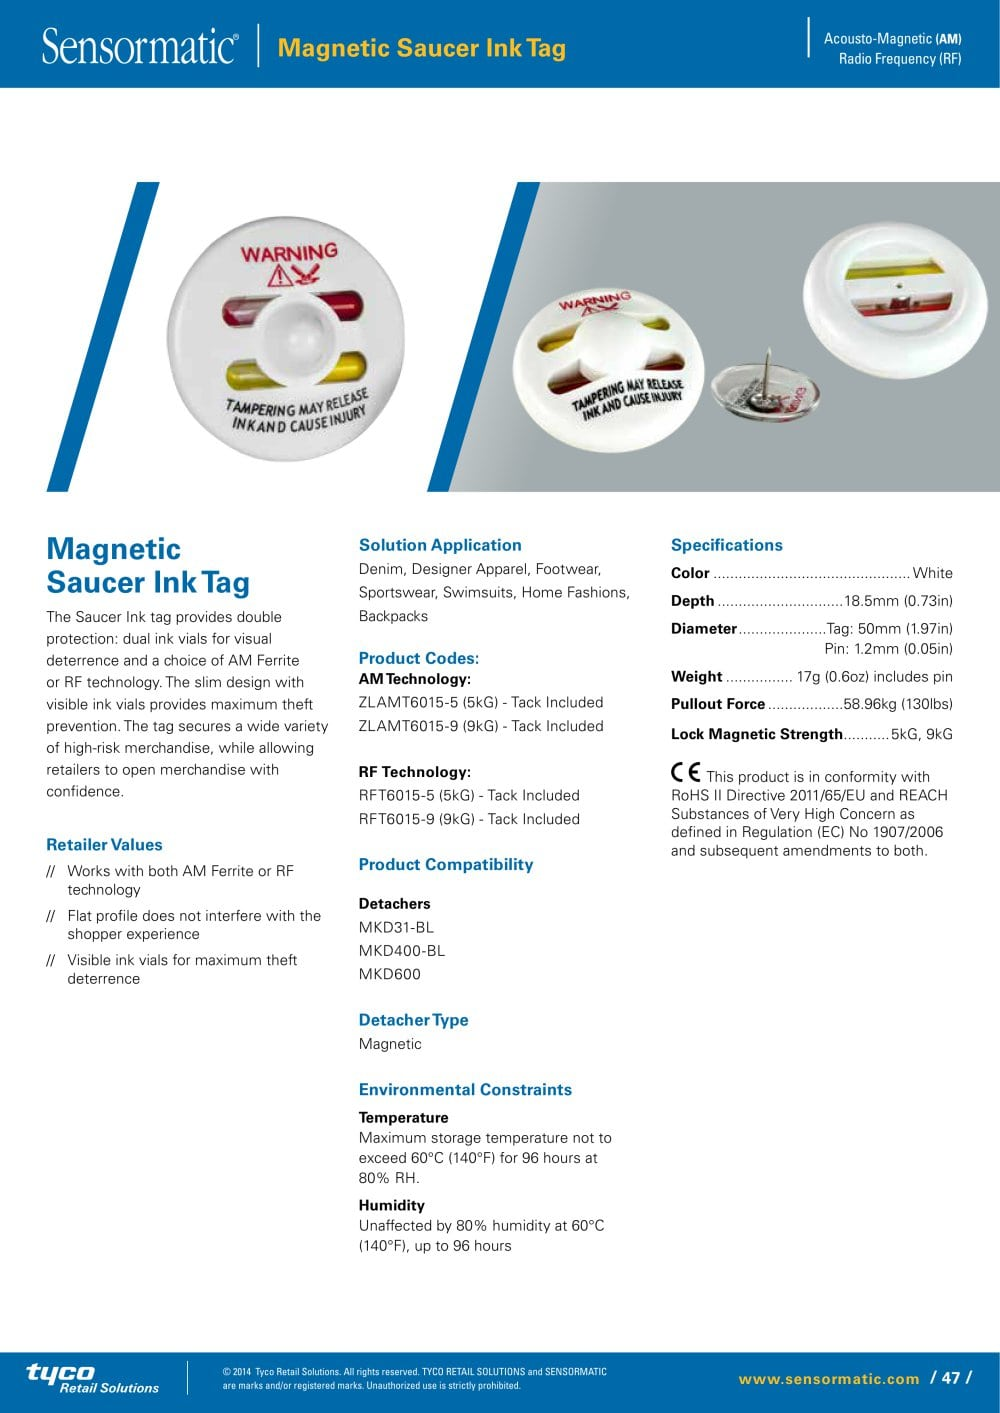 ec9683478e60 Magnetic Saucer Ink Tag - Sensormatic - PDF Catalogs